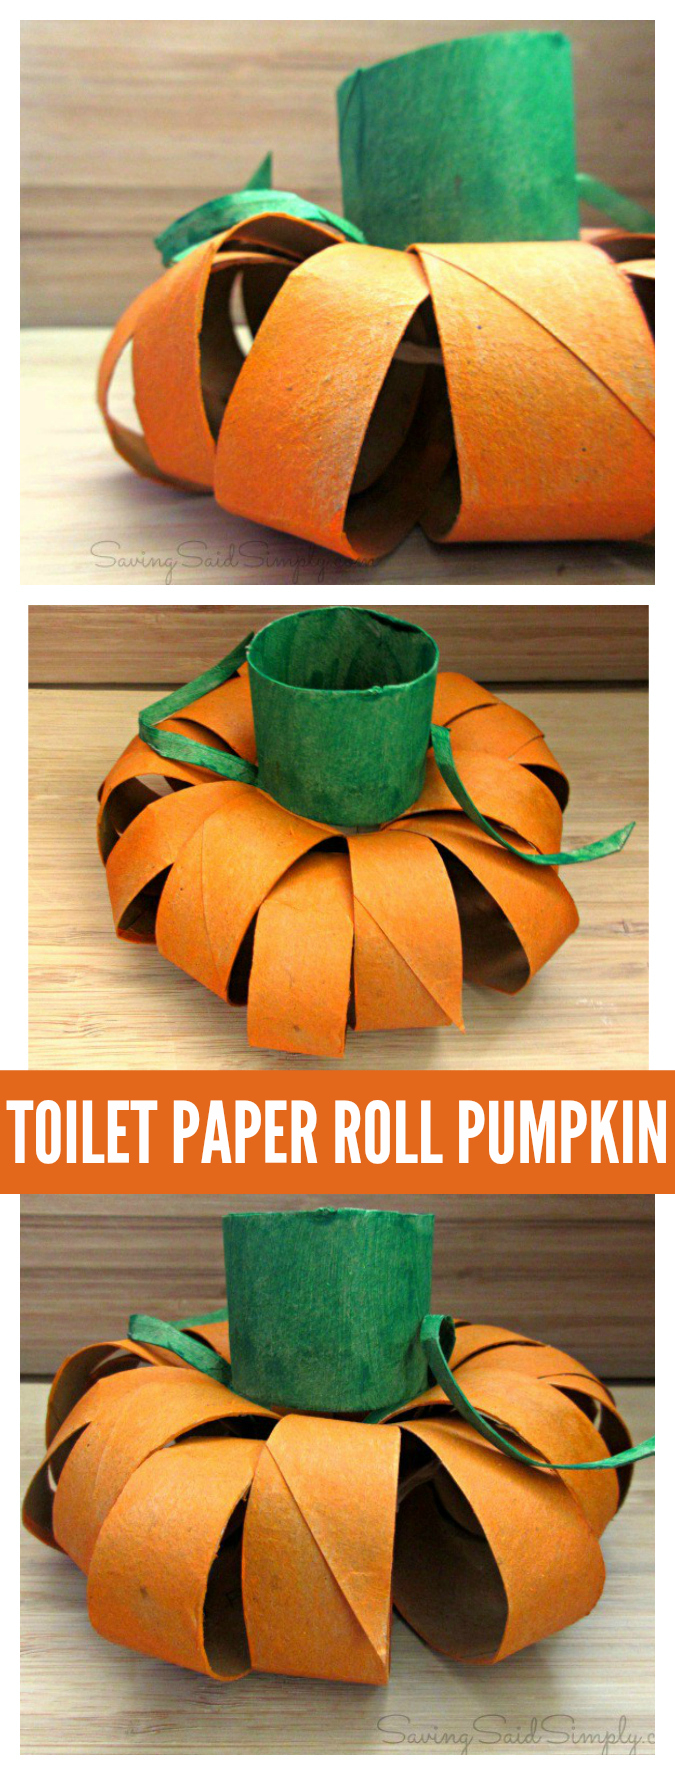 Toilet paper roll pumpkin craft pinterest